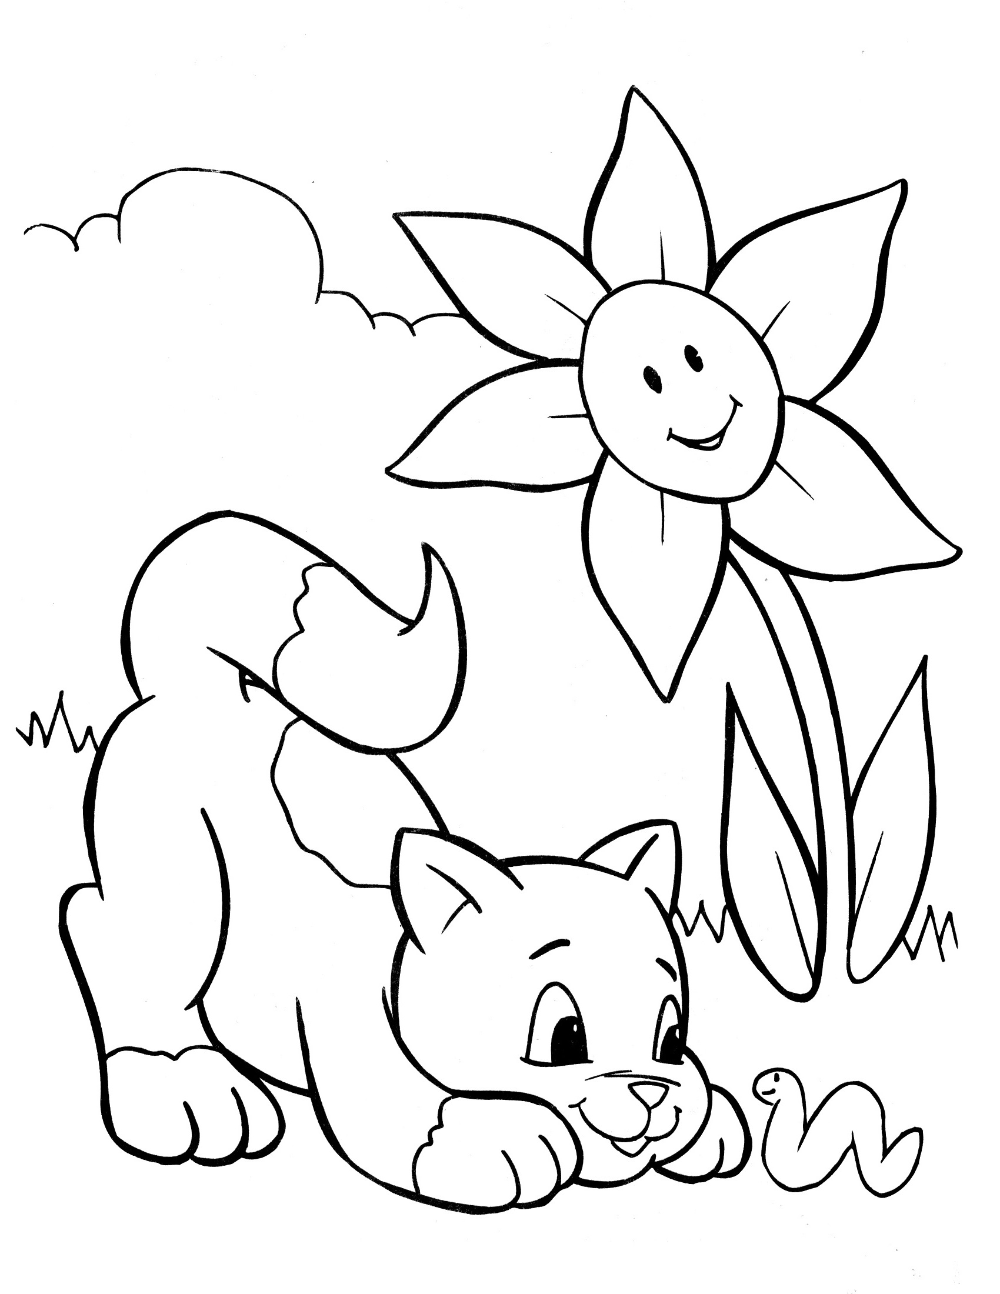 Crayola Coloring Pages Printable Educative Printable Crayola Coloring Pages Spring Coloring Pages Bunny Coloring Pages